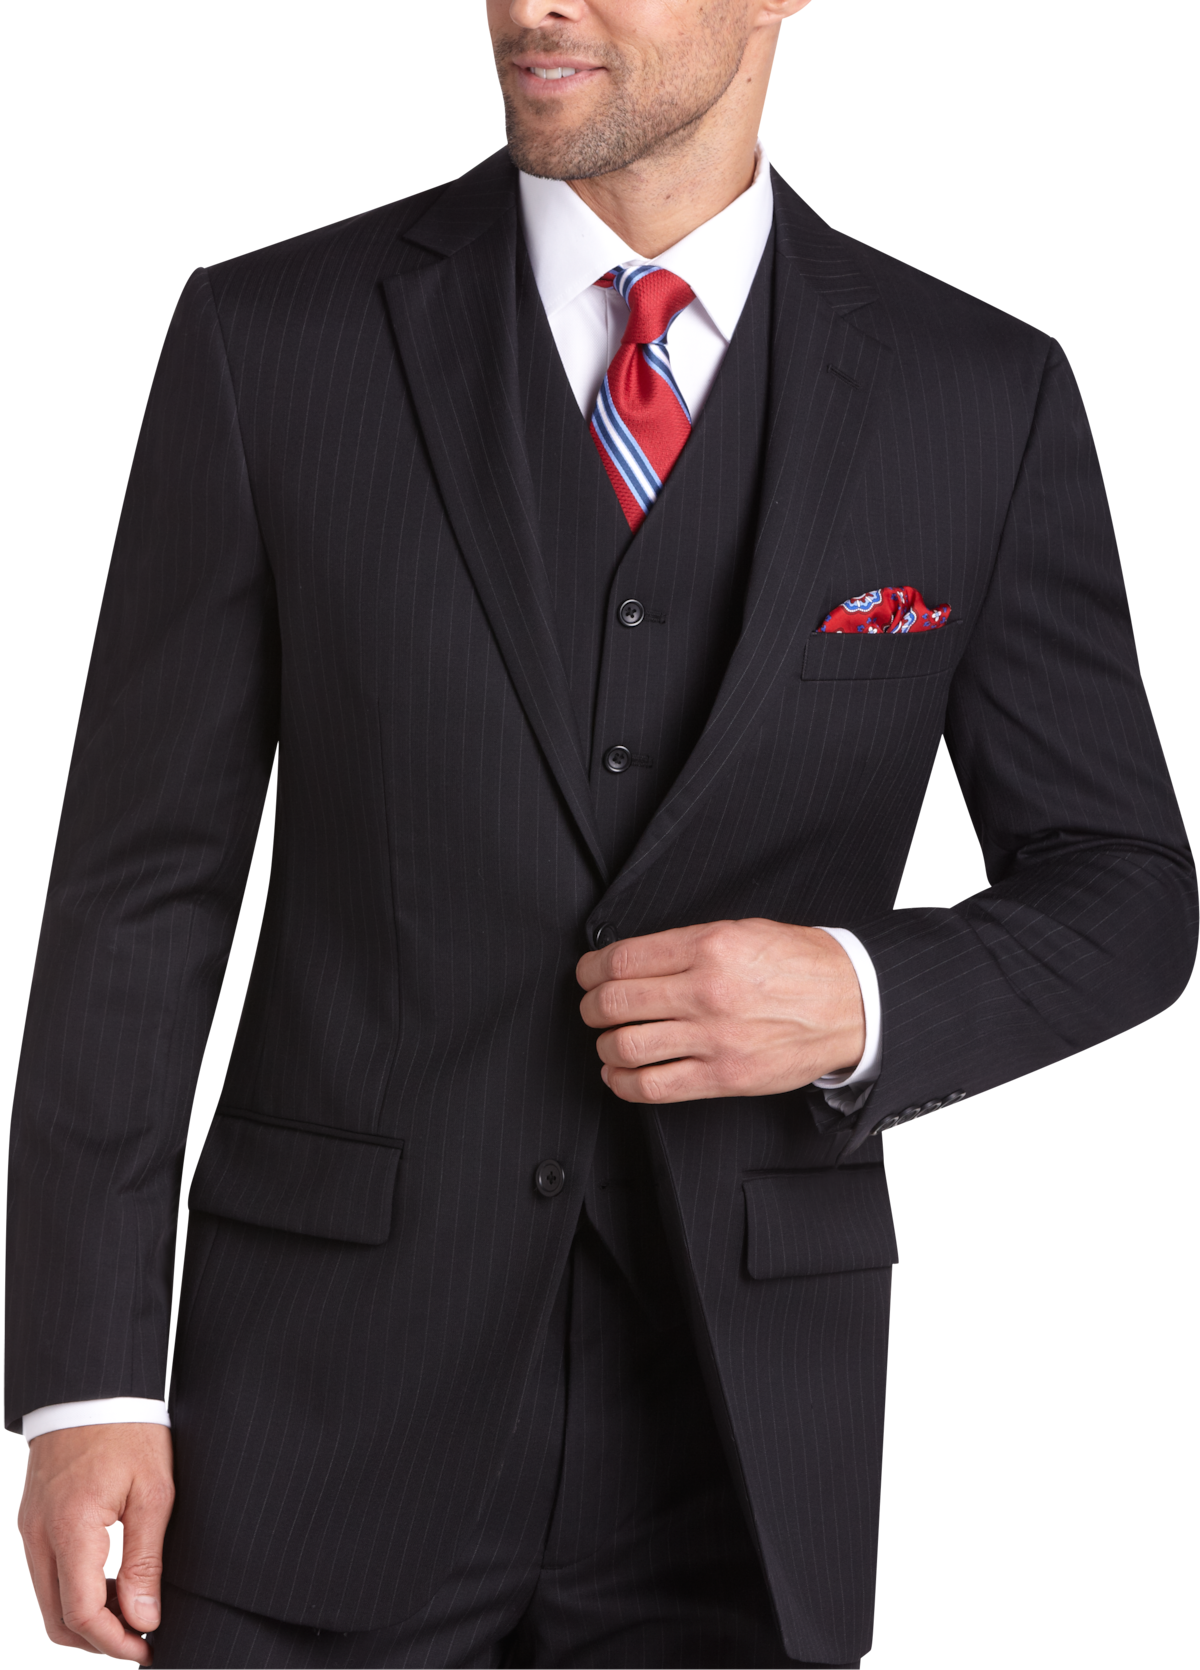 Nautica Nautica Blue Plaid Modern Fit Sport Coat Men's Wearhouse $ $ Nautica. Nautica Olive Herringbone Modern Fit Sport Coat $ at Men's Wearhouse. This classic sport coat by Nautica is the perfect addition to your look.